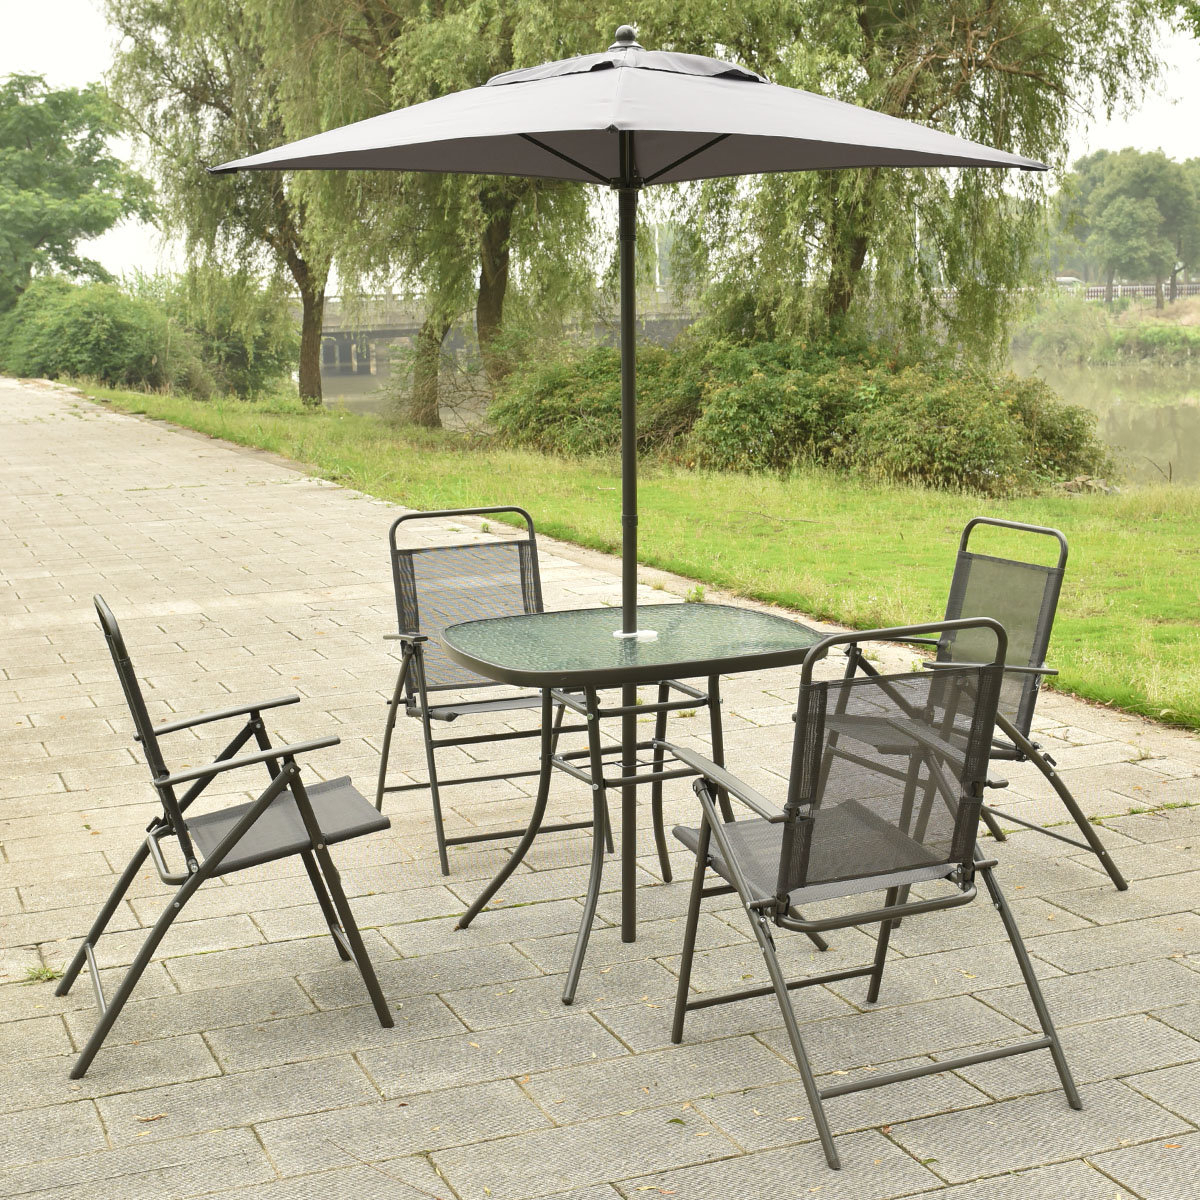 Most Current Cannock Market Umbrellas With Regard To Details About Ebern Designs Cannock 6 Piece Dining Set With Umbrella (Gallery 5 of 20)